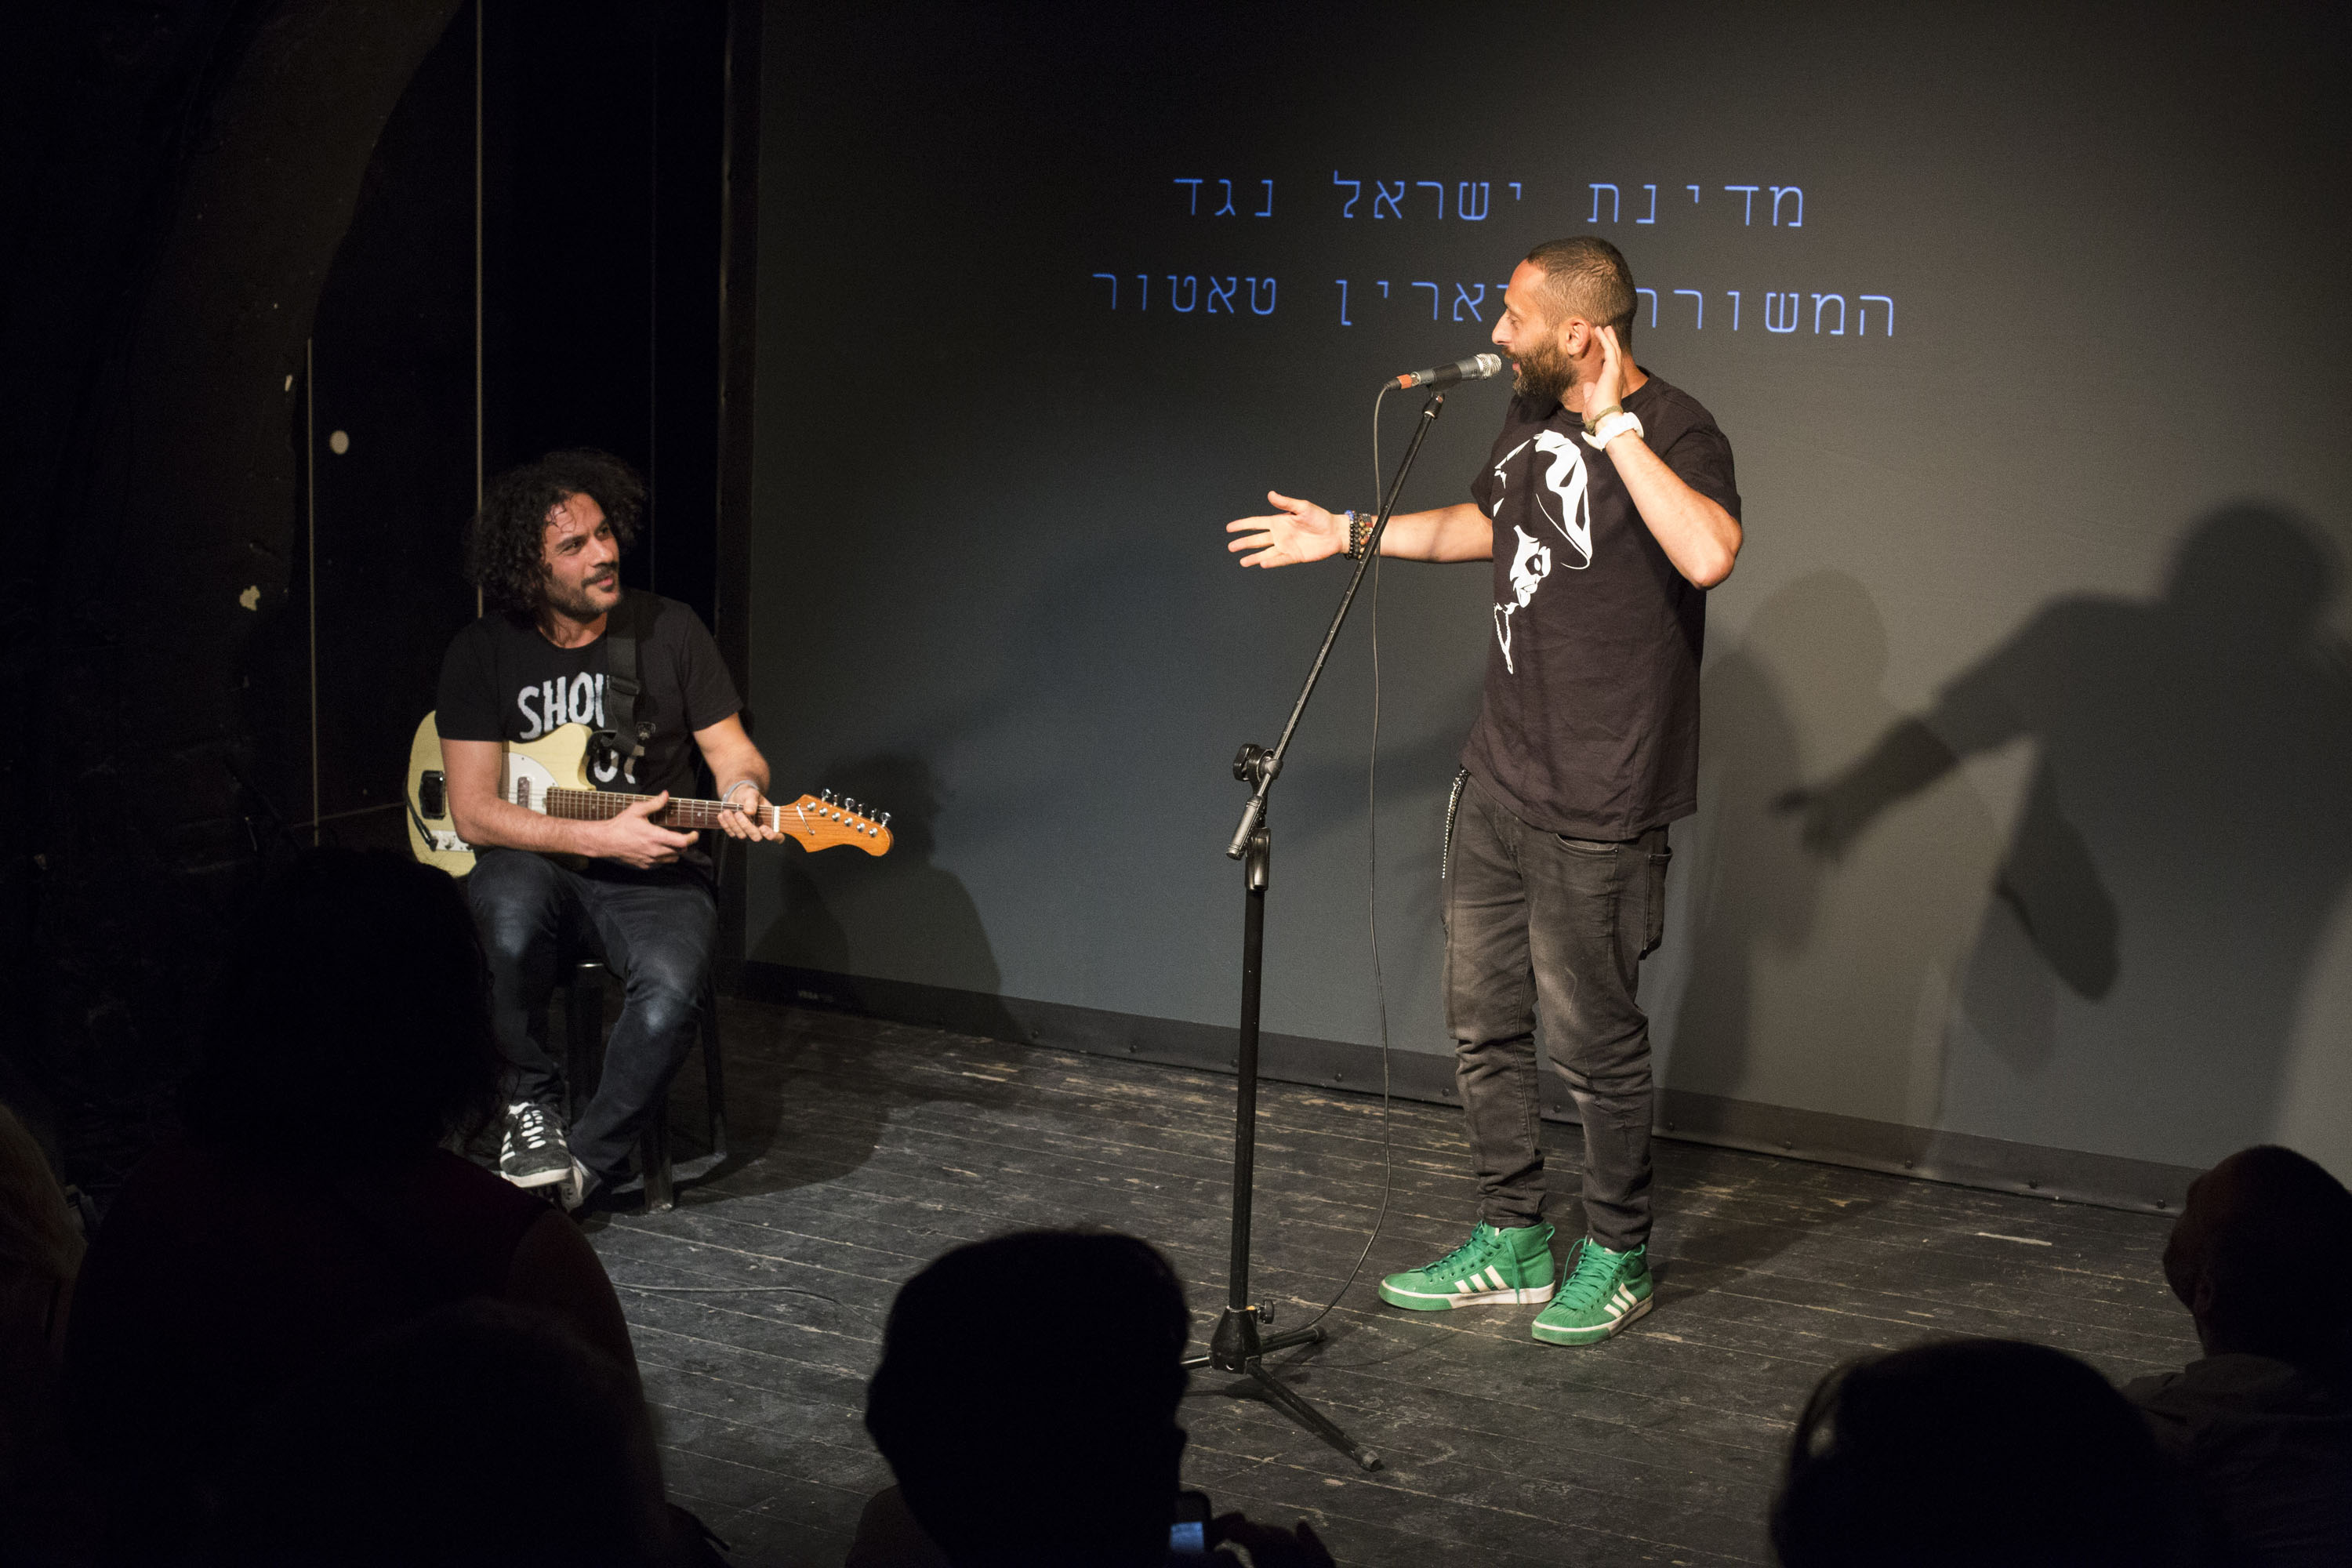 Palestinian hip hop artist Tamer Nafar and Israeli musician Itamar Ziegler perform during a solidarity event for Palestinian poet Dareen Tatour, Jaffa, August 31, 2017. (Keren Manor/Activestills.org)